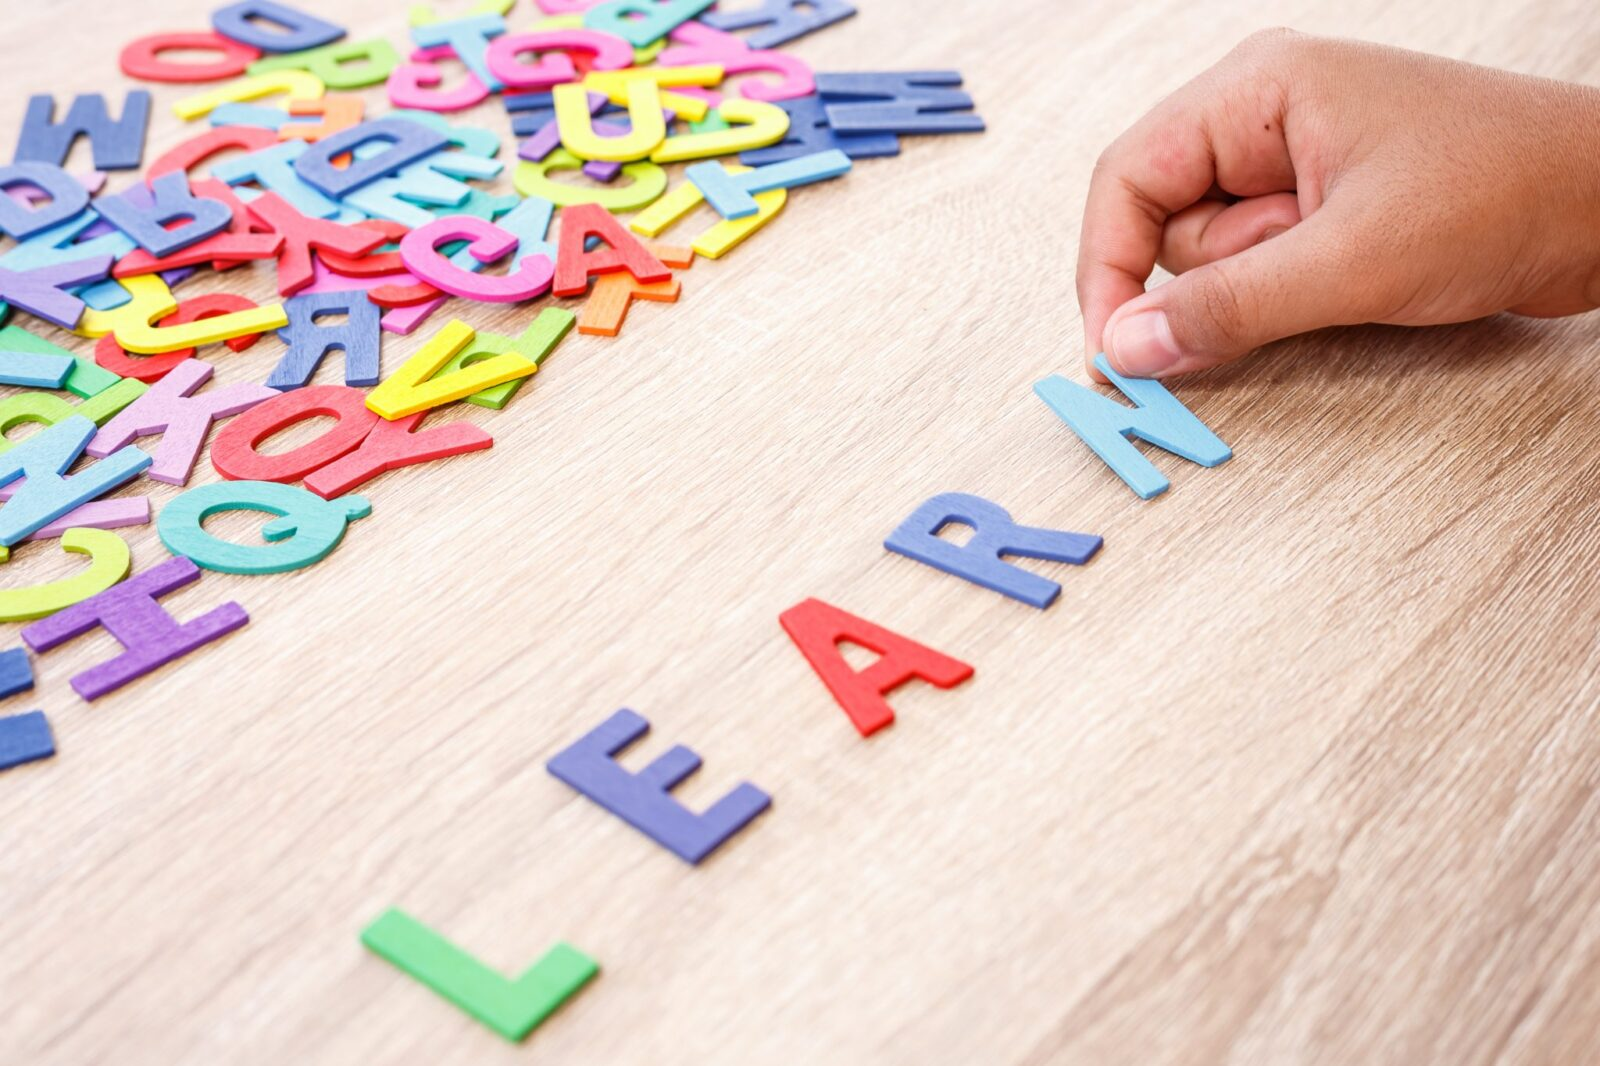 learn sight words with these hands-on games